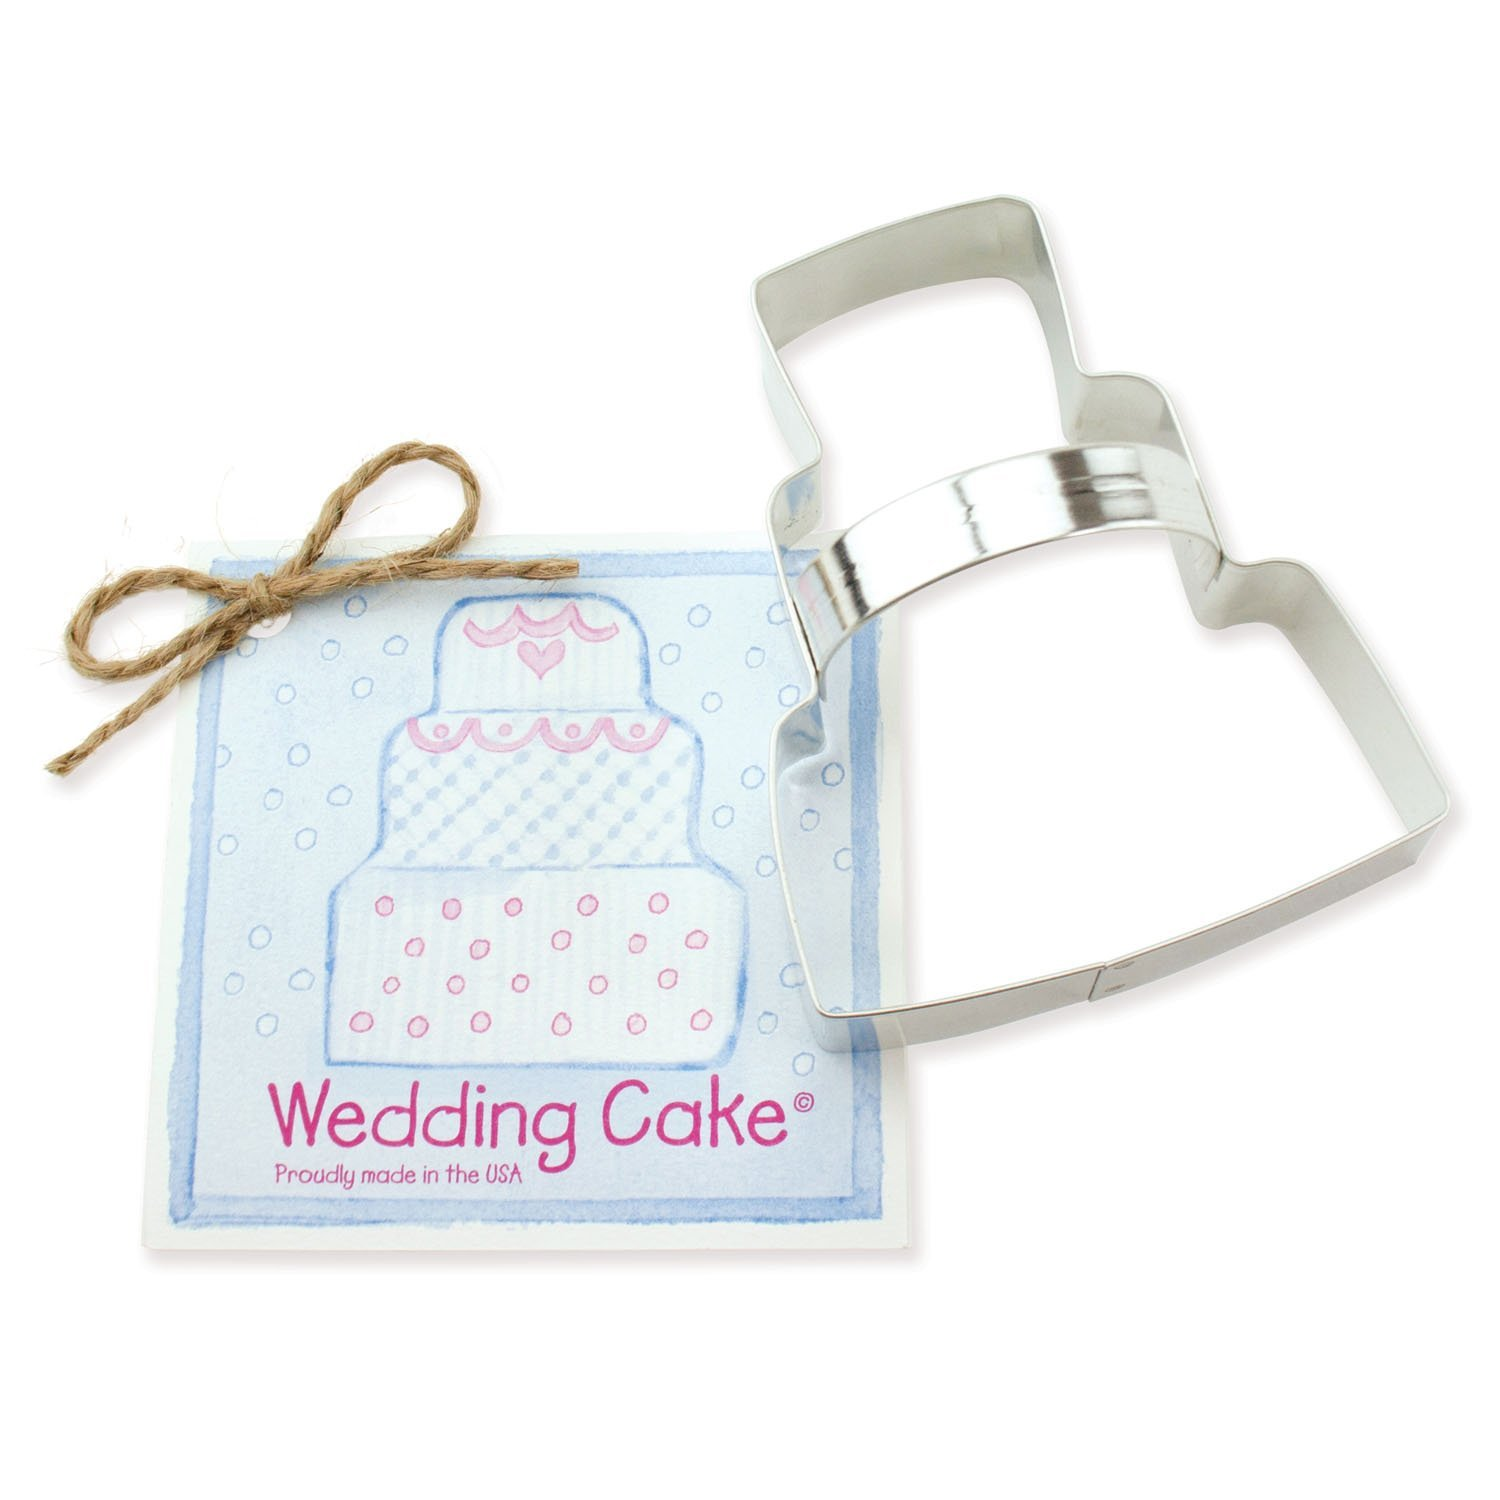 Wedding Cake Cookie and Fondant Cutter Ann Clark 41 Inches US